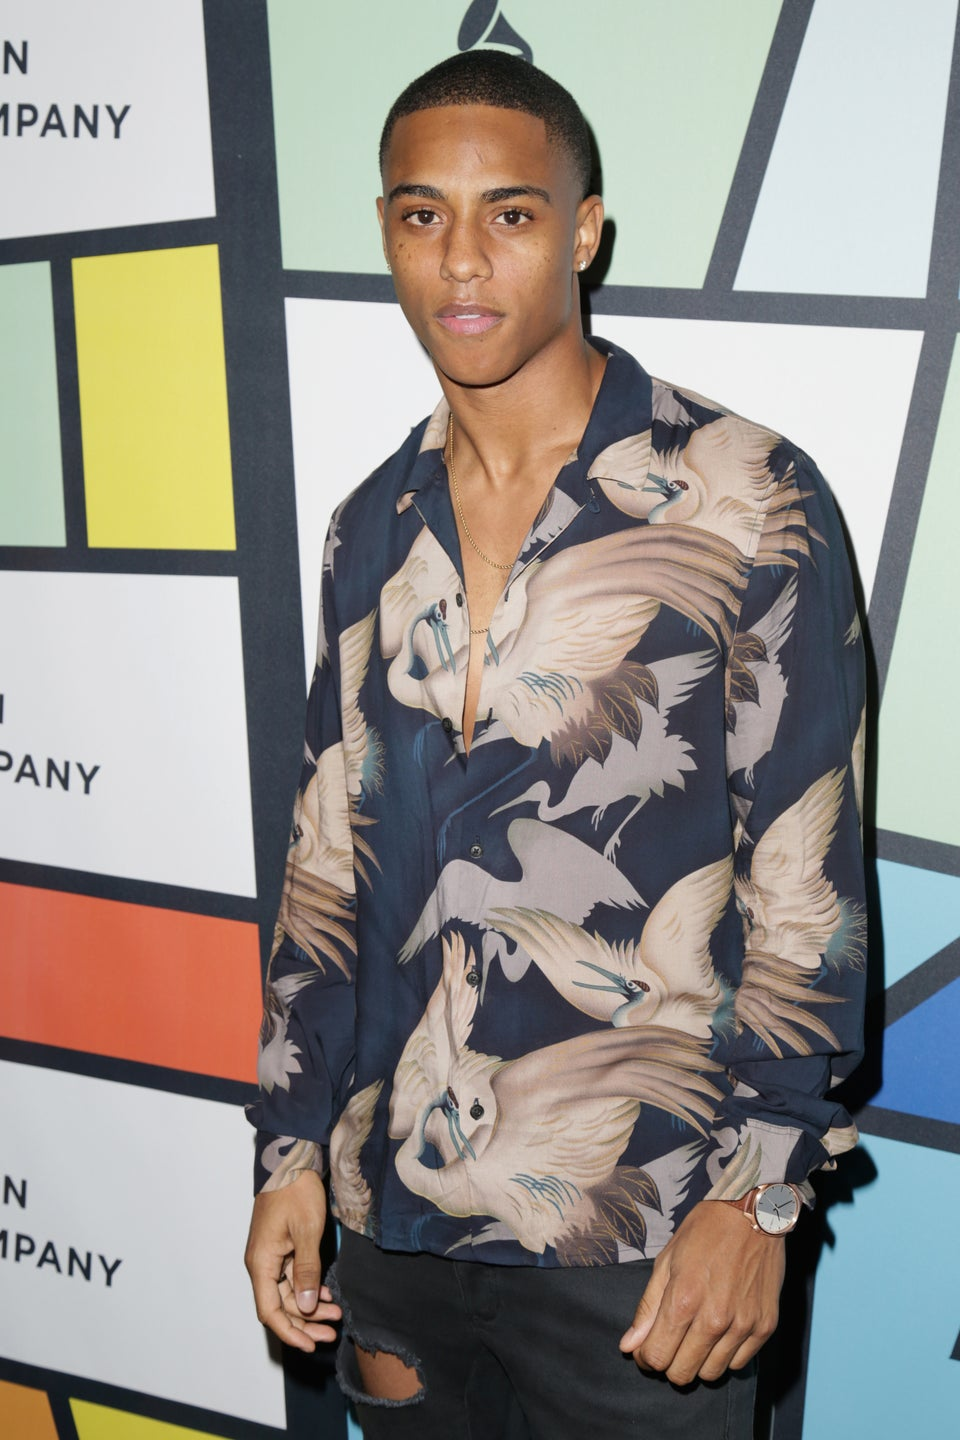 Keith Powers Apologizes To Fans After Questioning If Men Can Be Bisexual